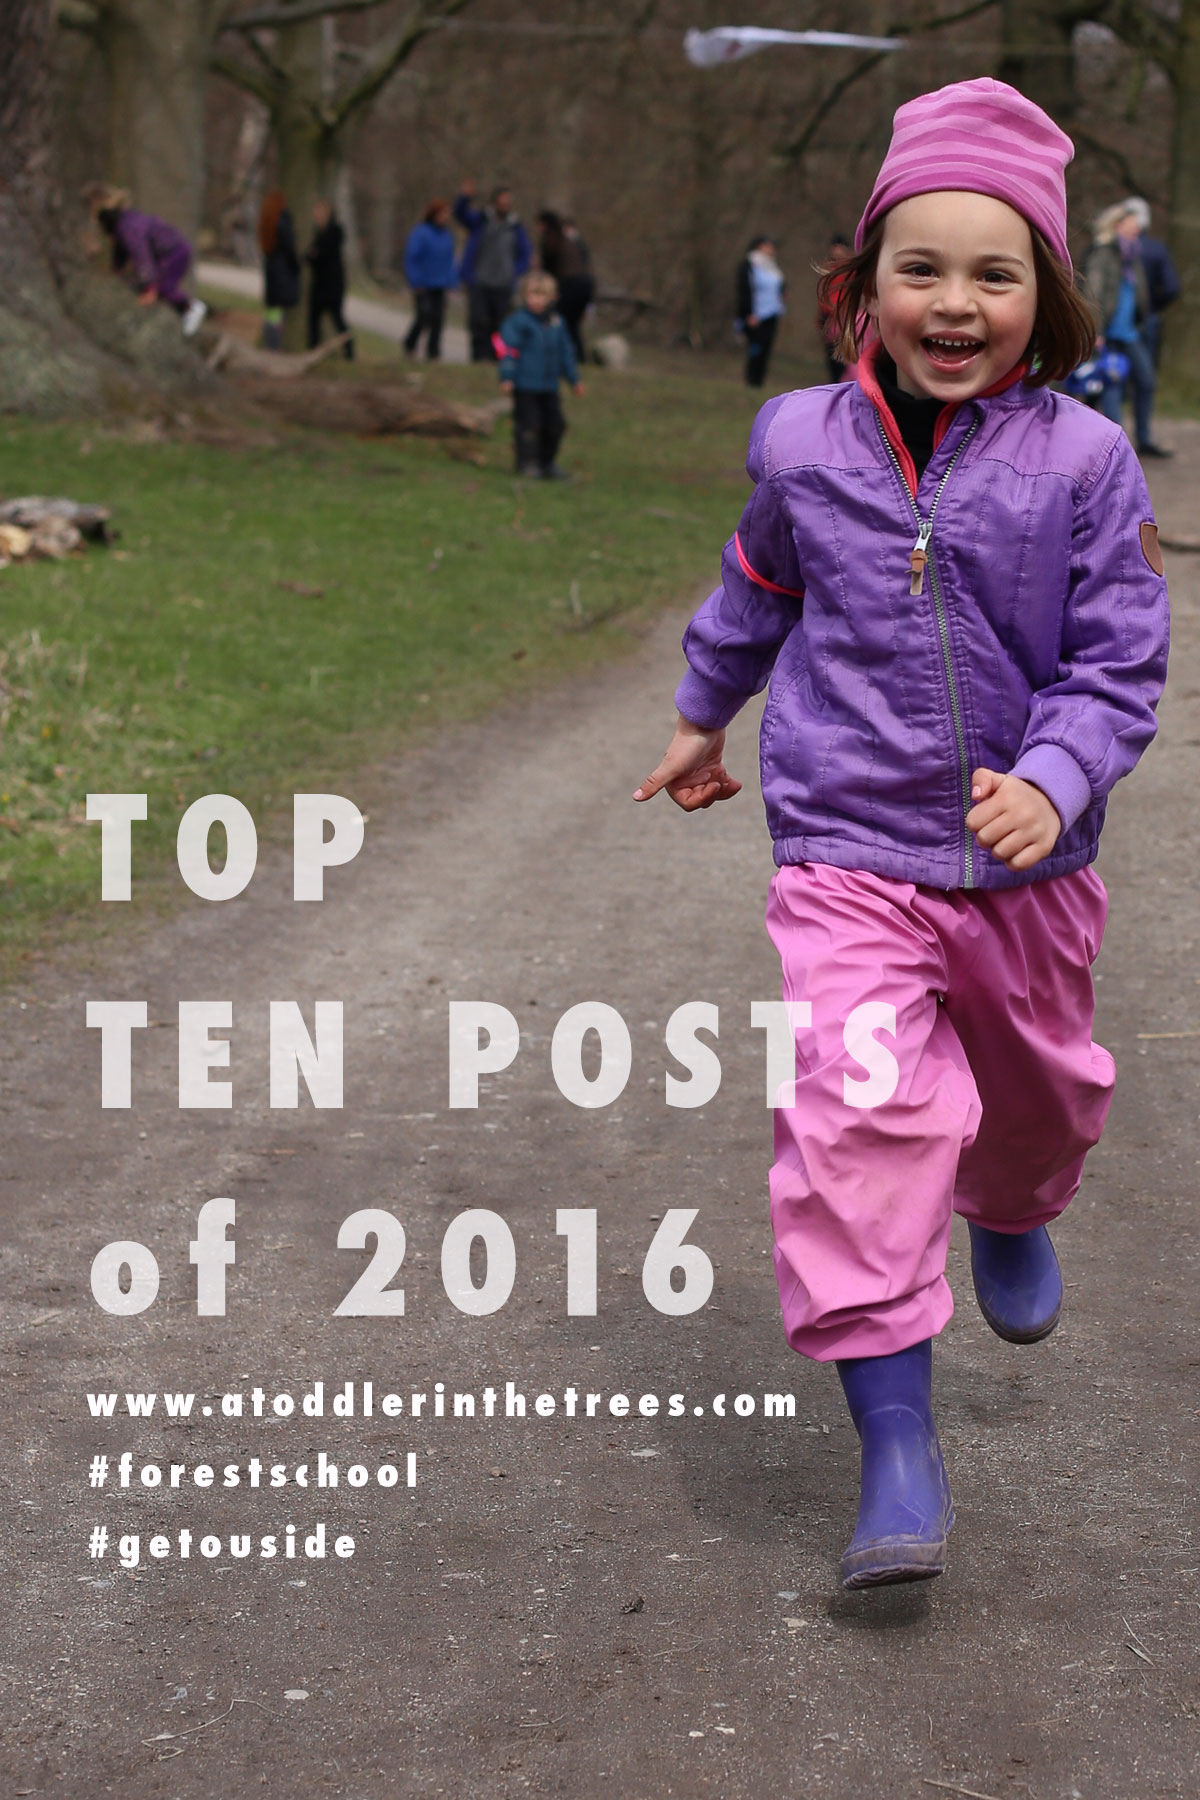 Top ten posts about forest school and forest kindergarten.